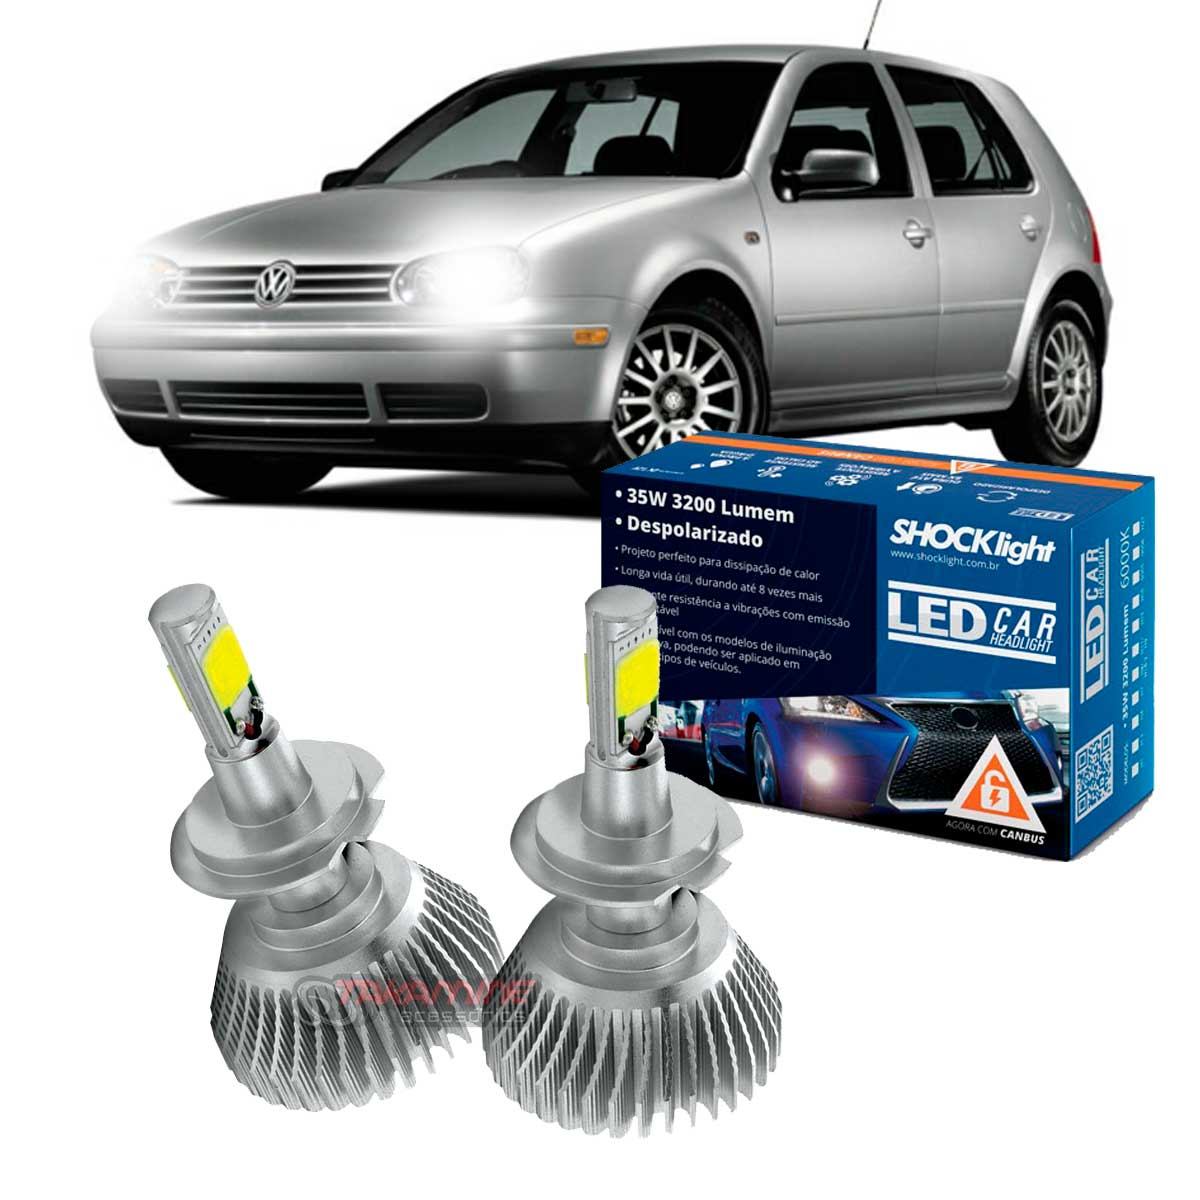 Kit LED Golf Nacional 1999 2000 2001 2002 2003 2004 2005 2006 tipo xenon farol baixo H7 35W Headlight